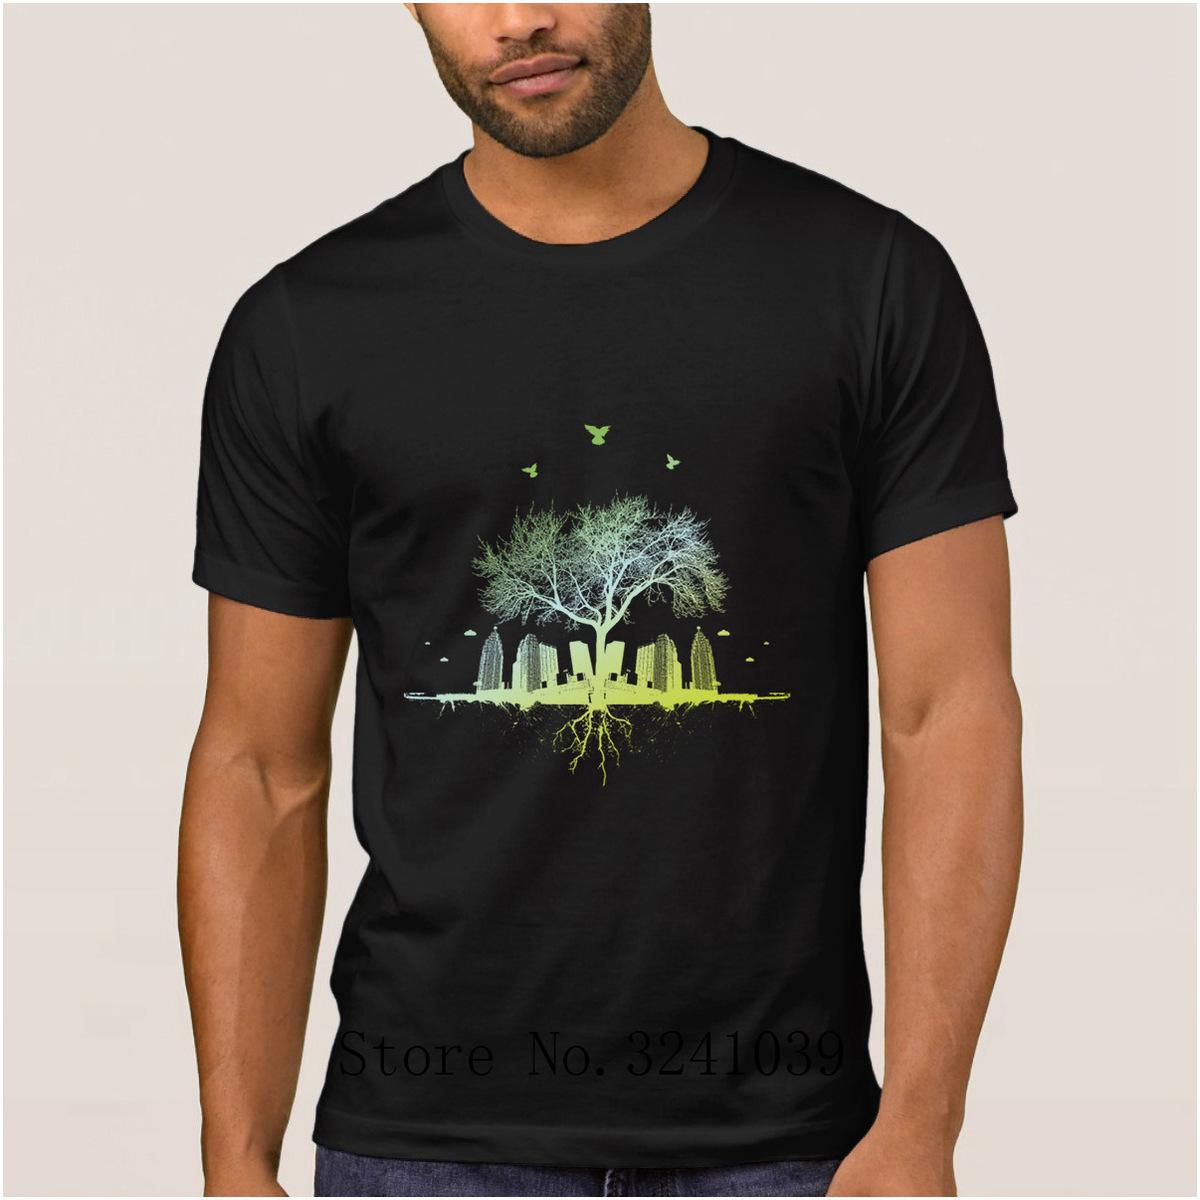 La Maxpa The new citytree t shirt for men summer Interesting Abstract Tree and Knife t-shirt mens Euro Size S-3xl men's tshirt